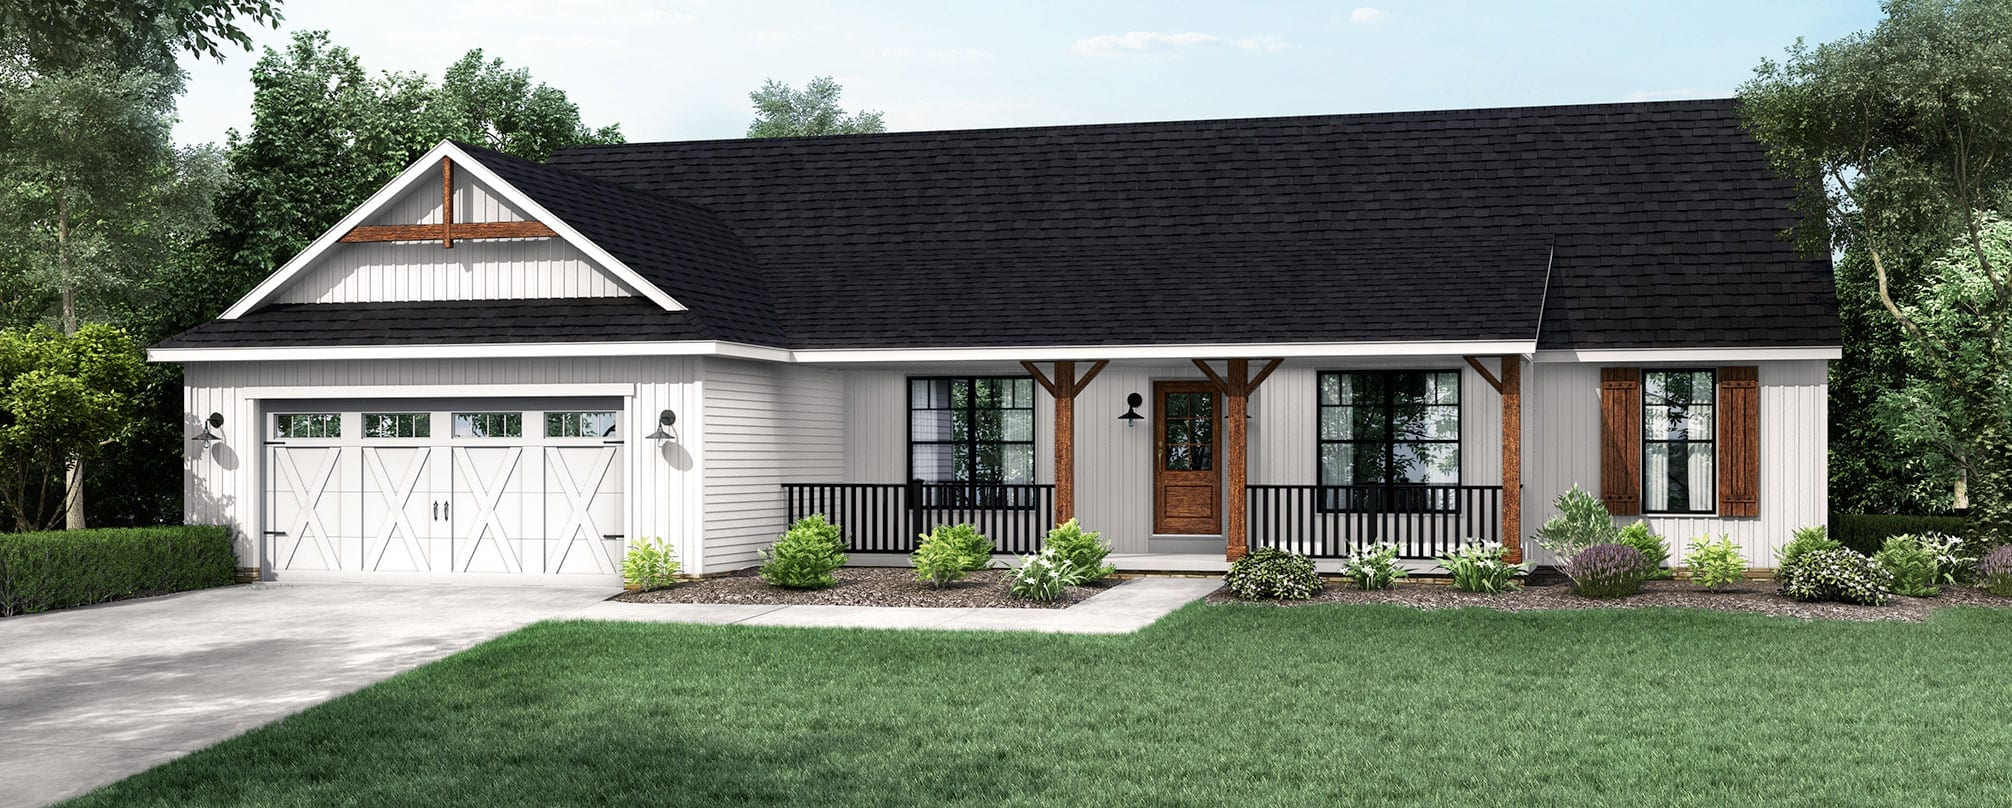 Our Farmhouse Designs Are So Popular We Added 5 More